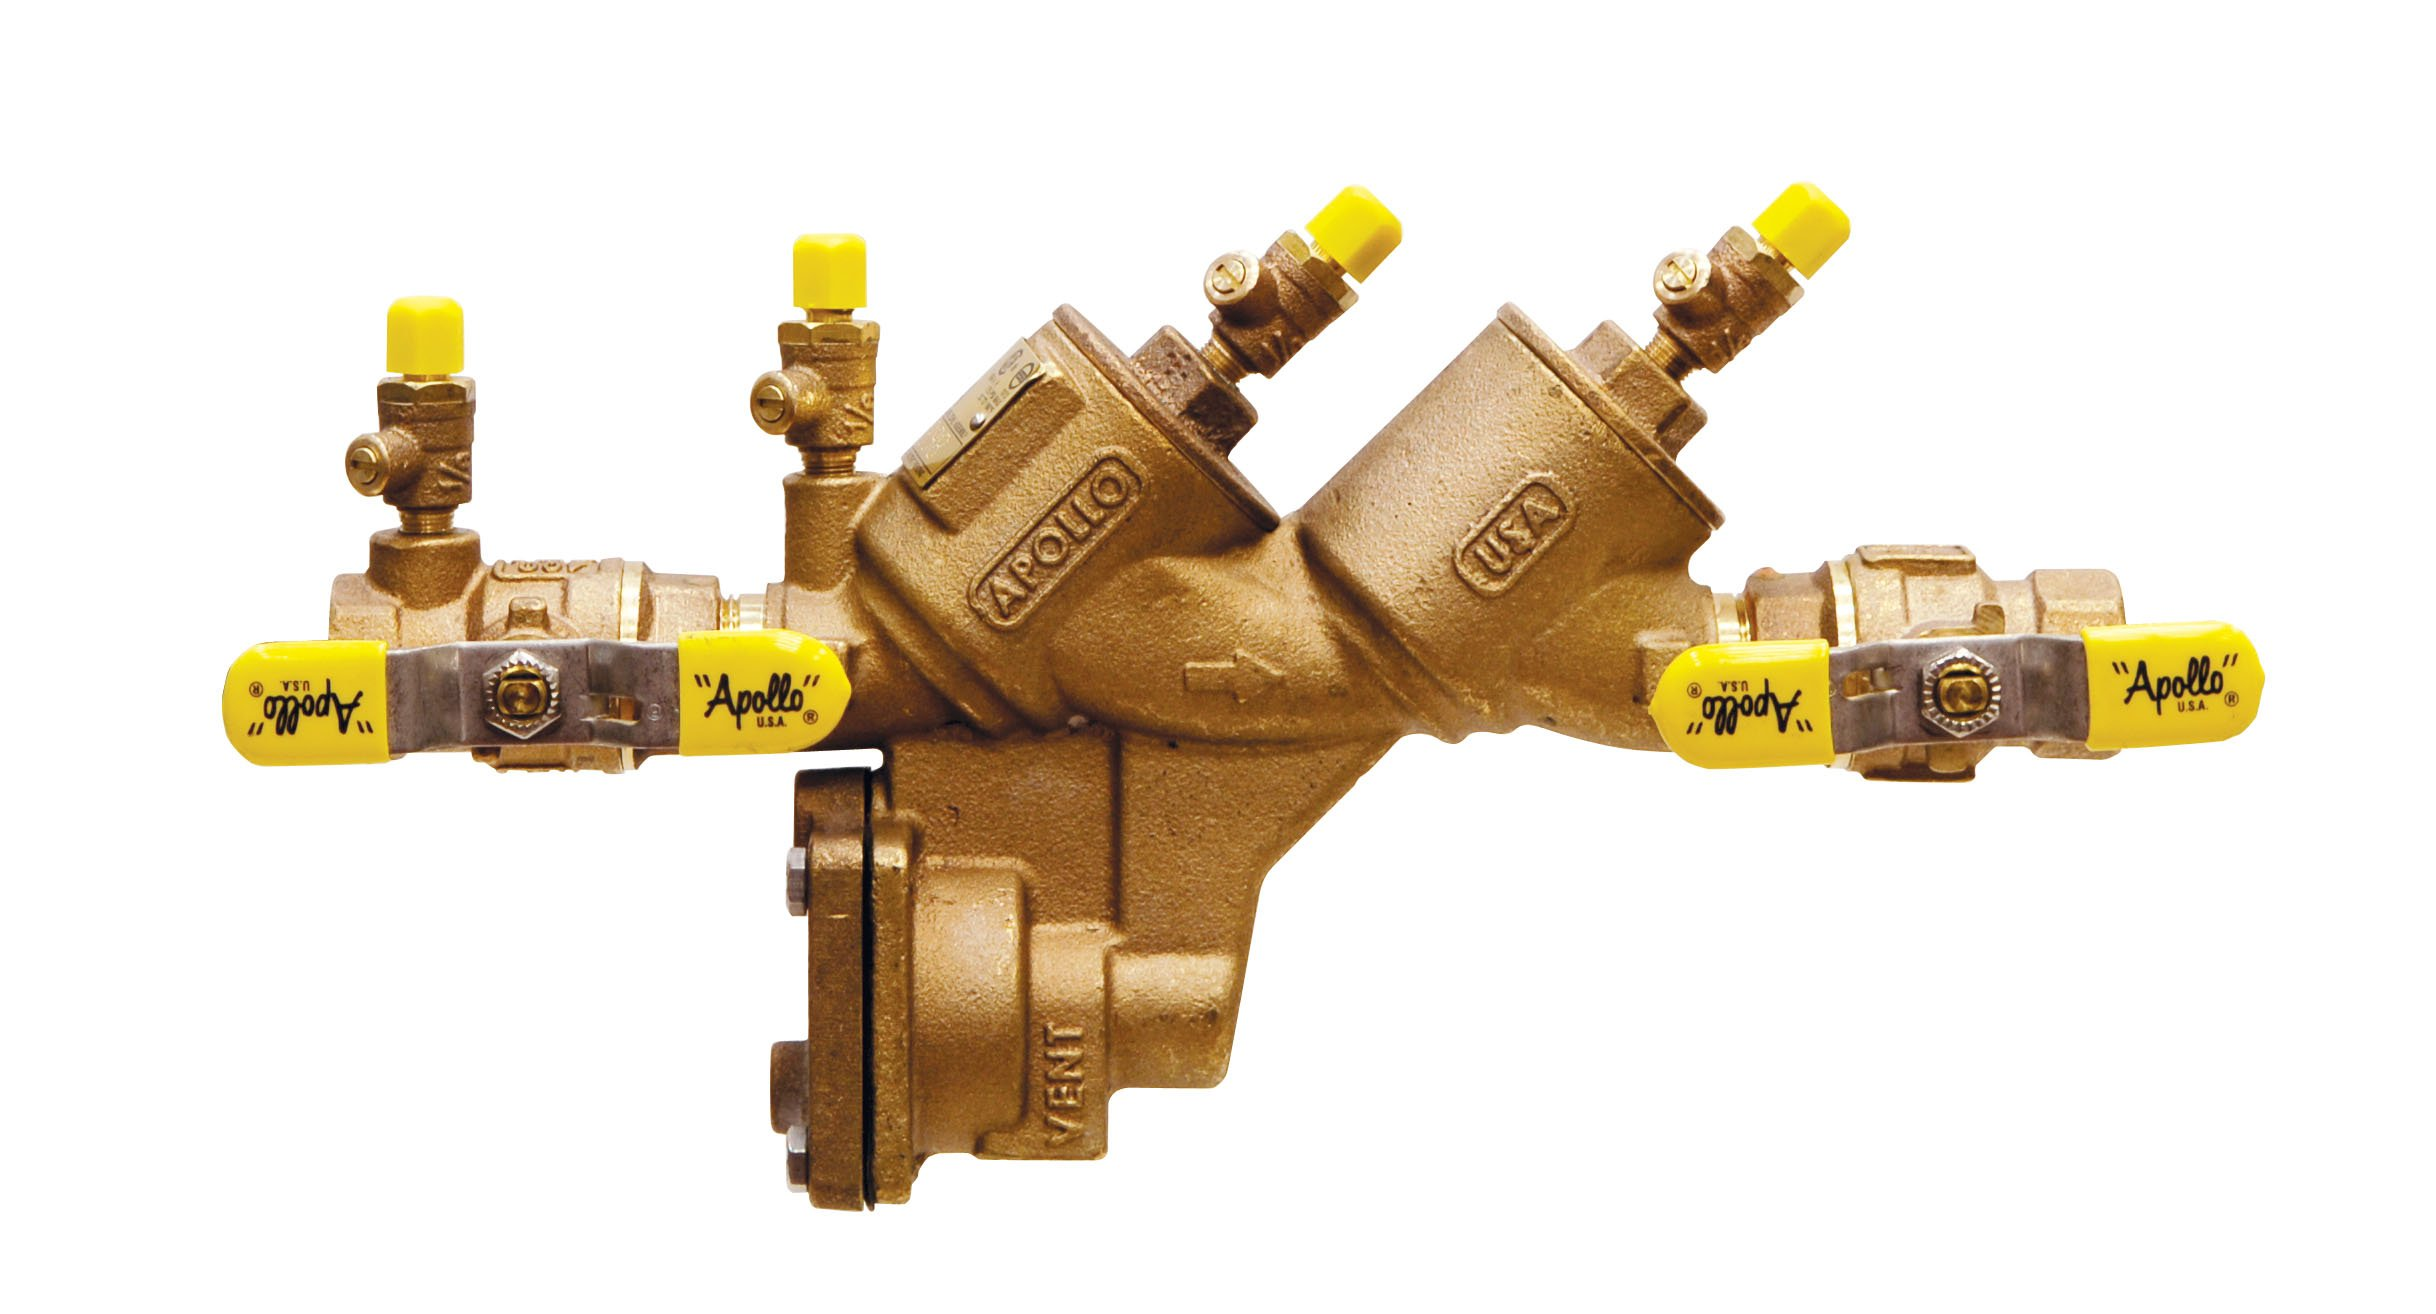 Apollo 4A204T2F Bronze Reduced Pressure Zone Valve with Ball Valve and SAE Threaded Test Cocks, 3/4'' Size